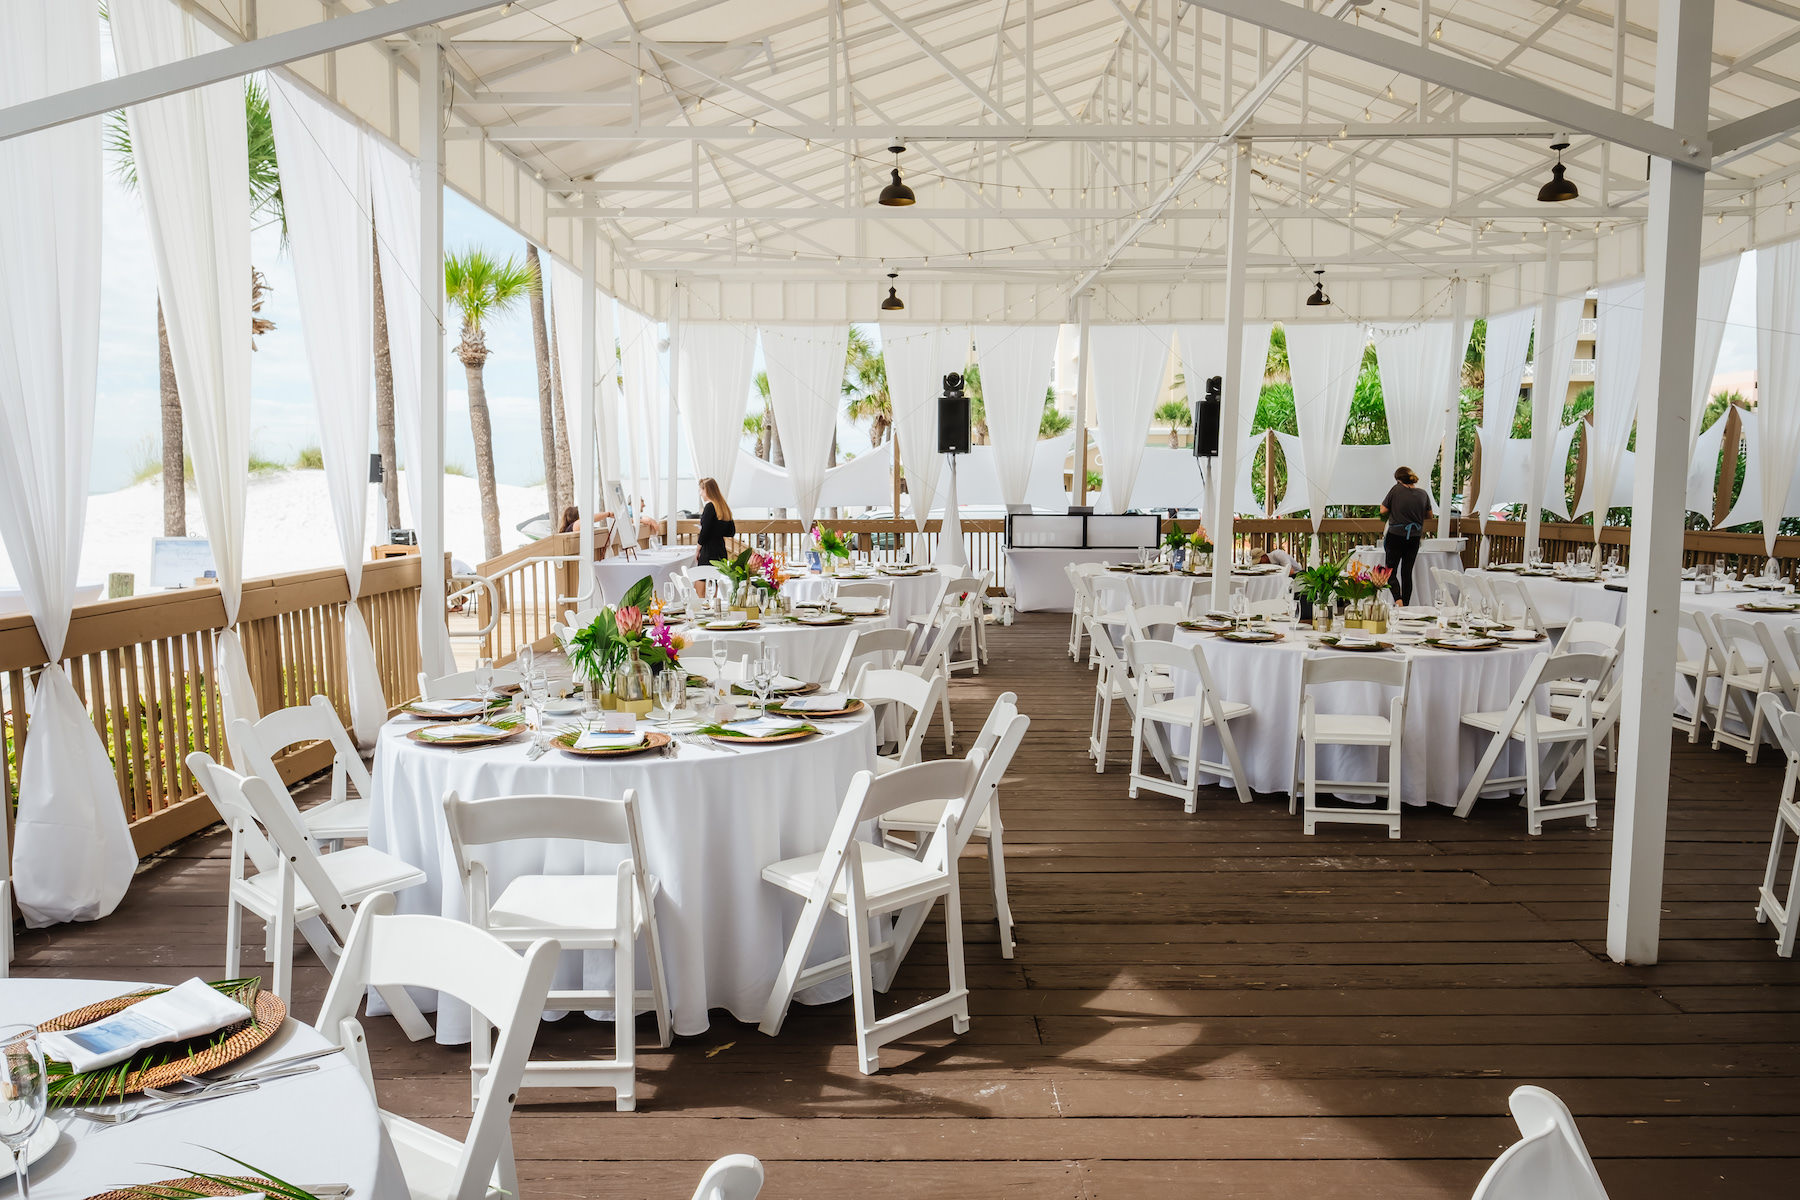 Tropical Wedding Reception Decor Round Tables With White Linens White Folding Chairs And Colorful Floral Centerpieces White Draping Outdoor Florida Beach Hotel Wedding Venue Hilton Clearwater Beach Resort And Spa